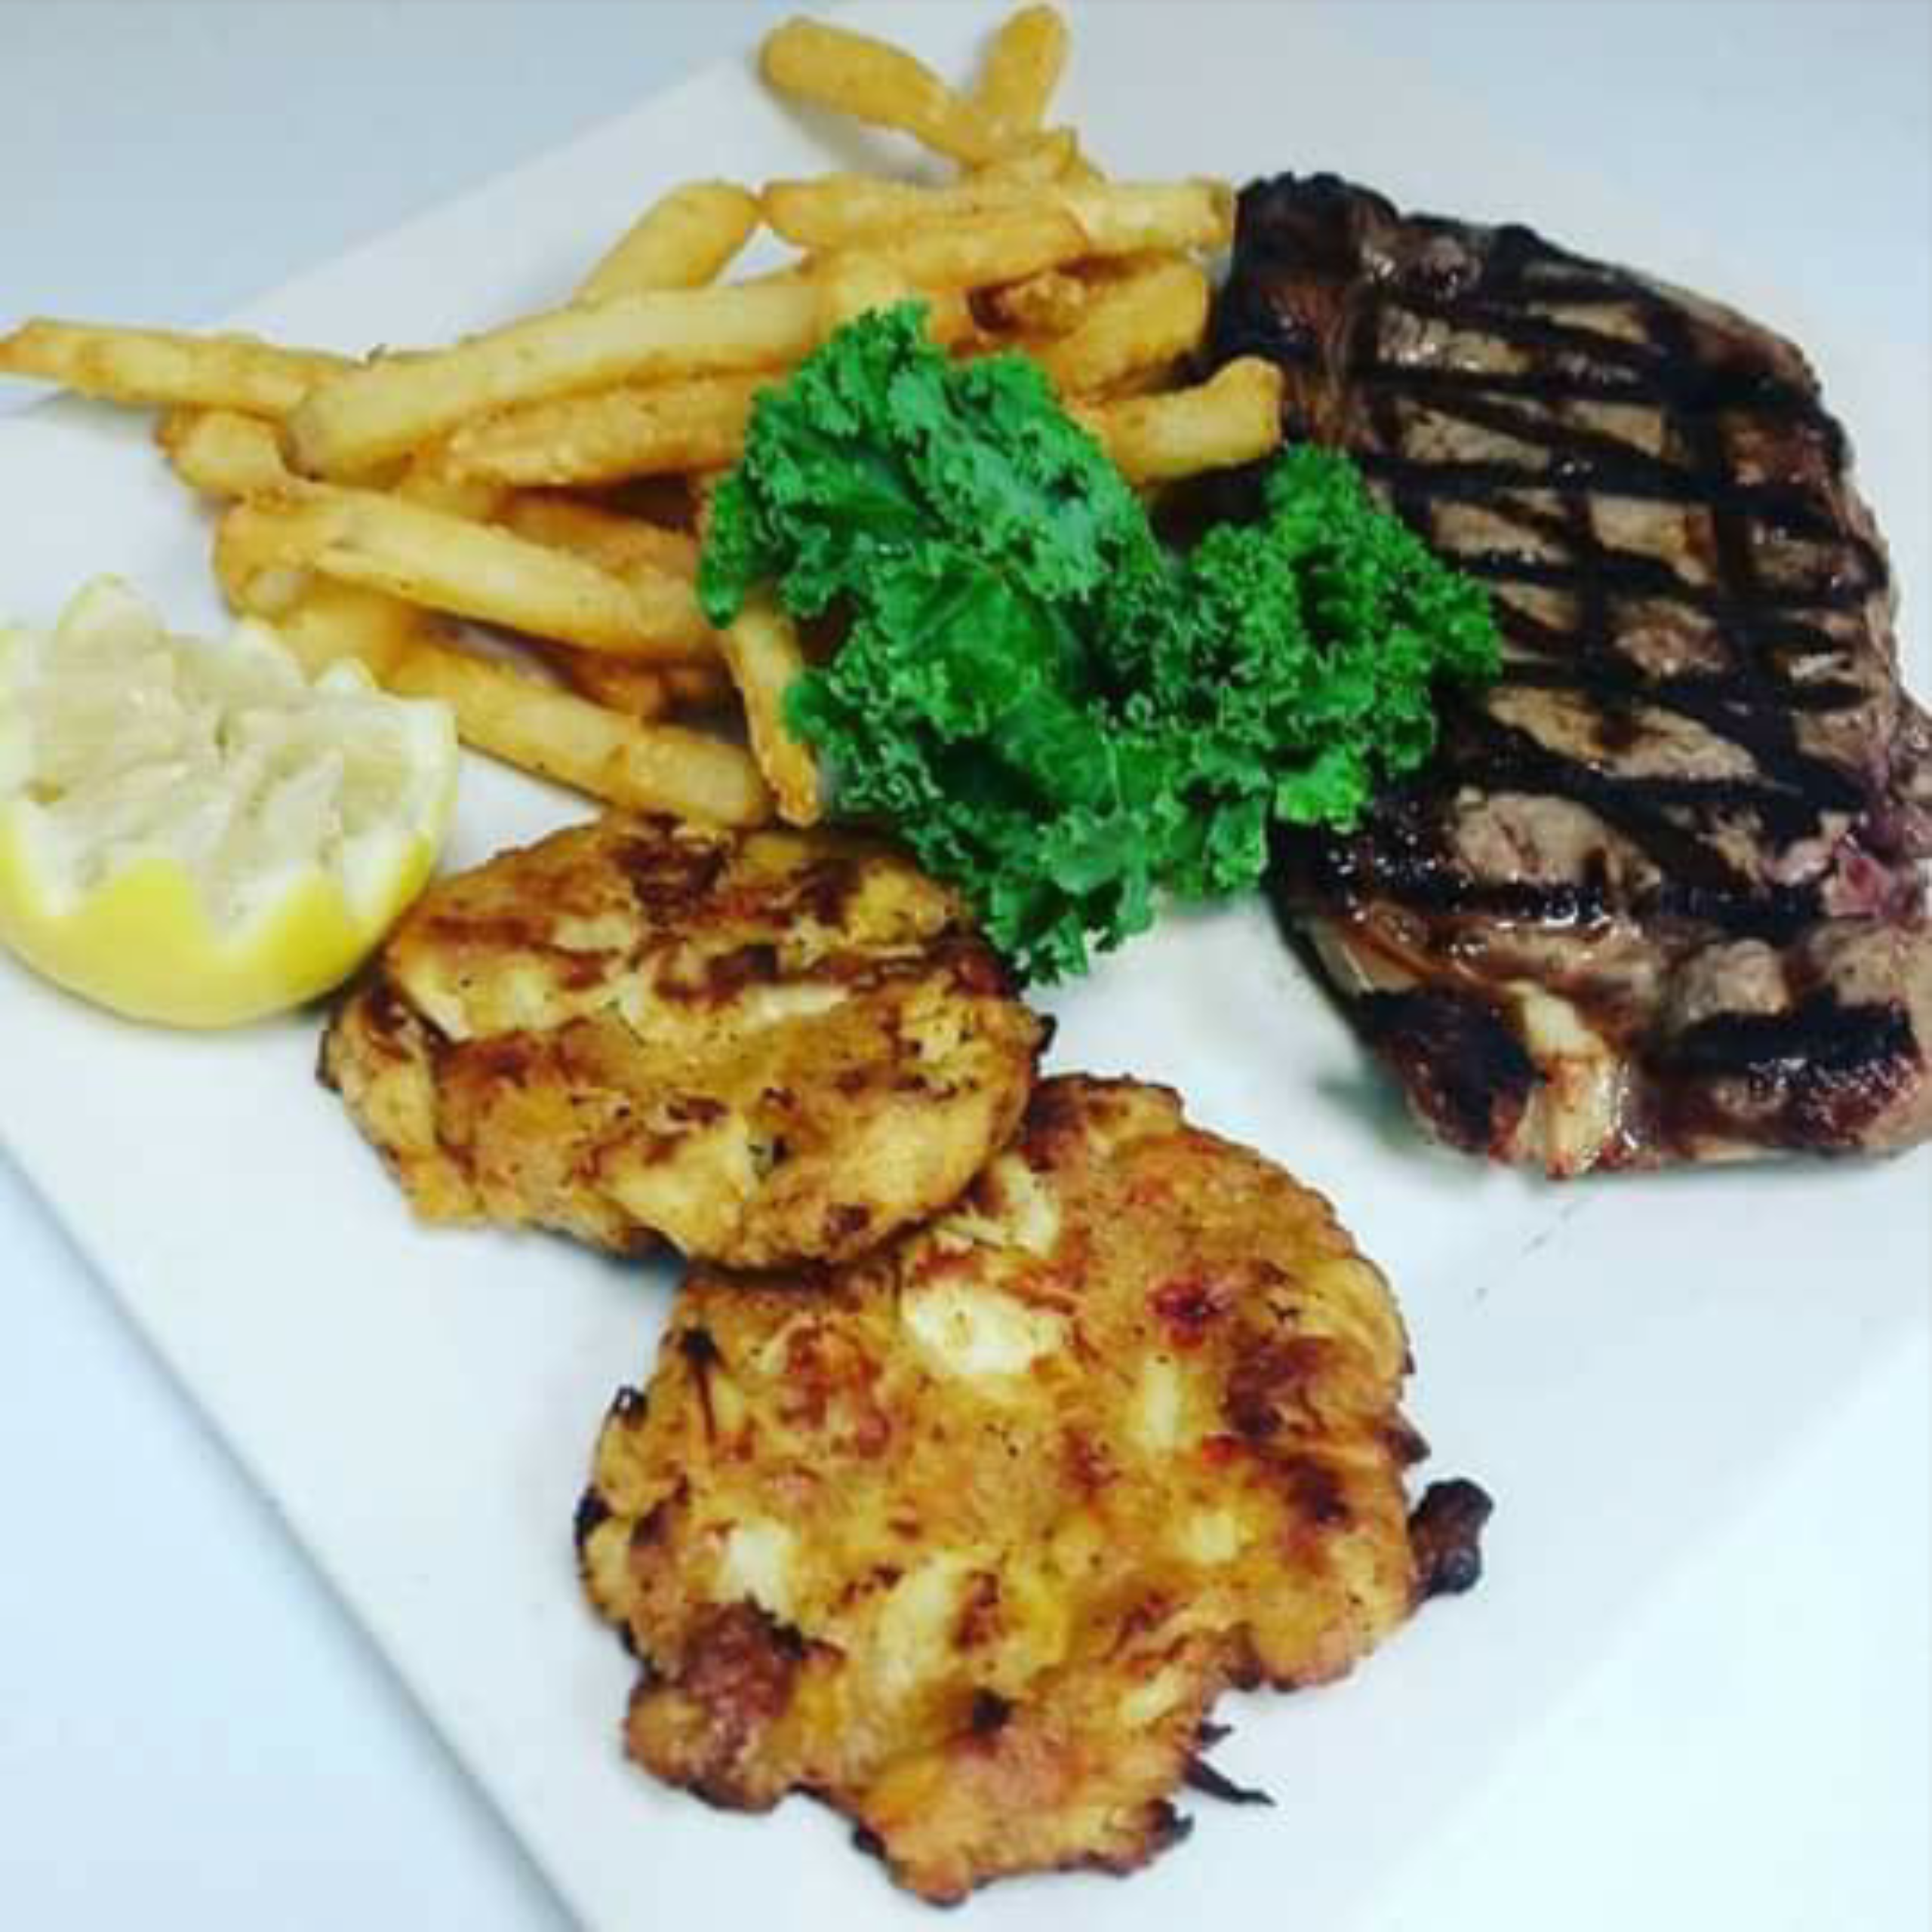 Thursday Steak and Crab Cakes Combo Only $19.99!